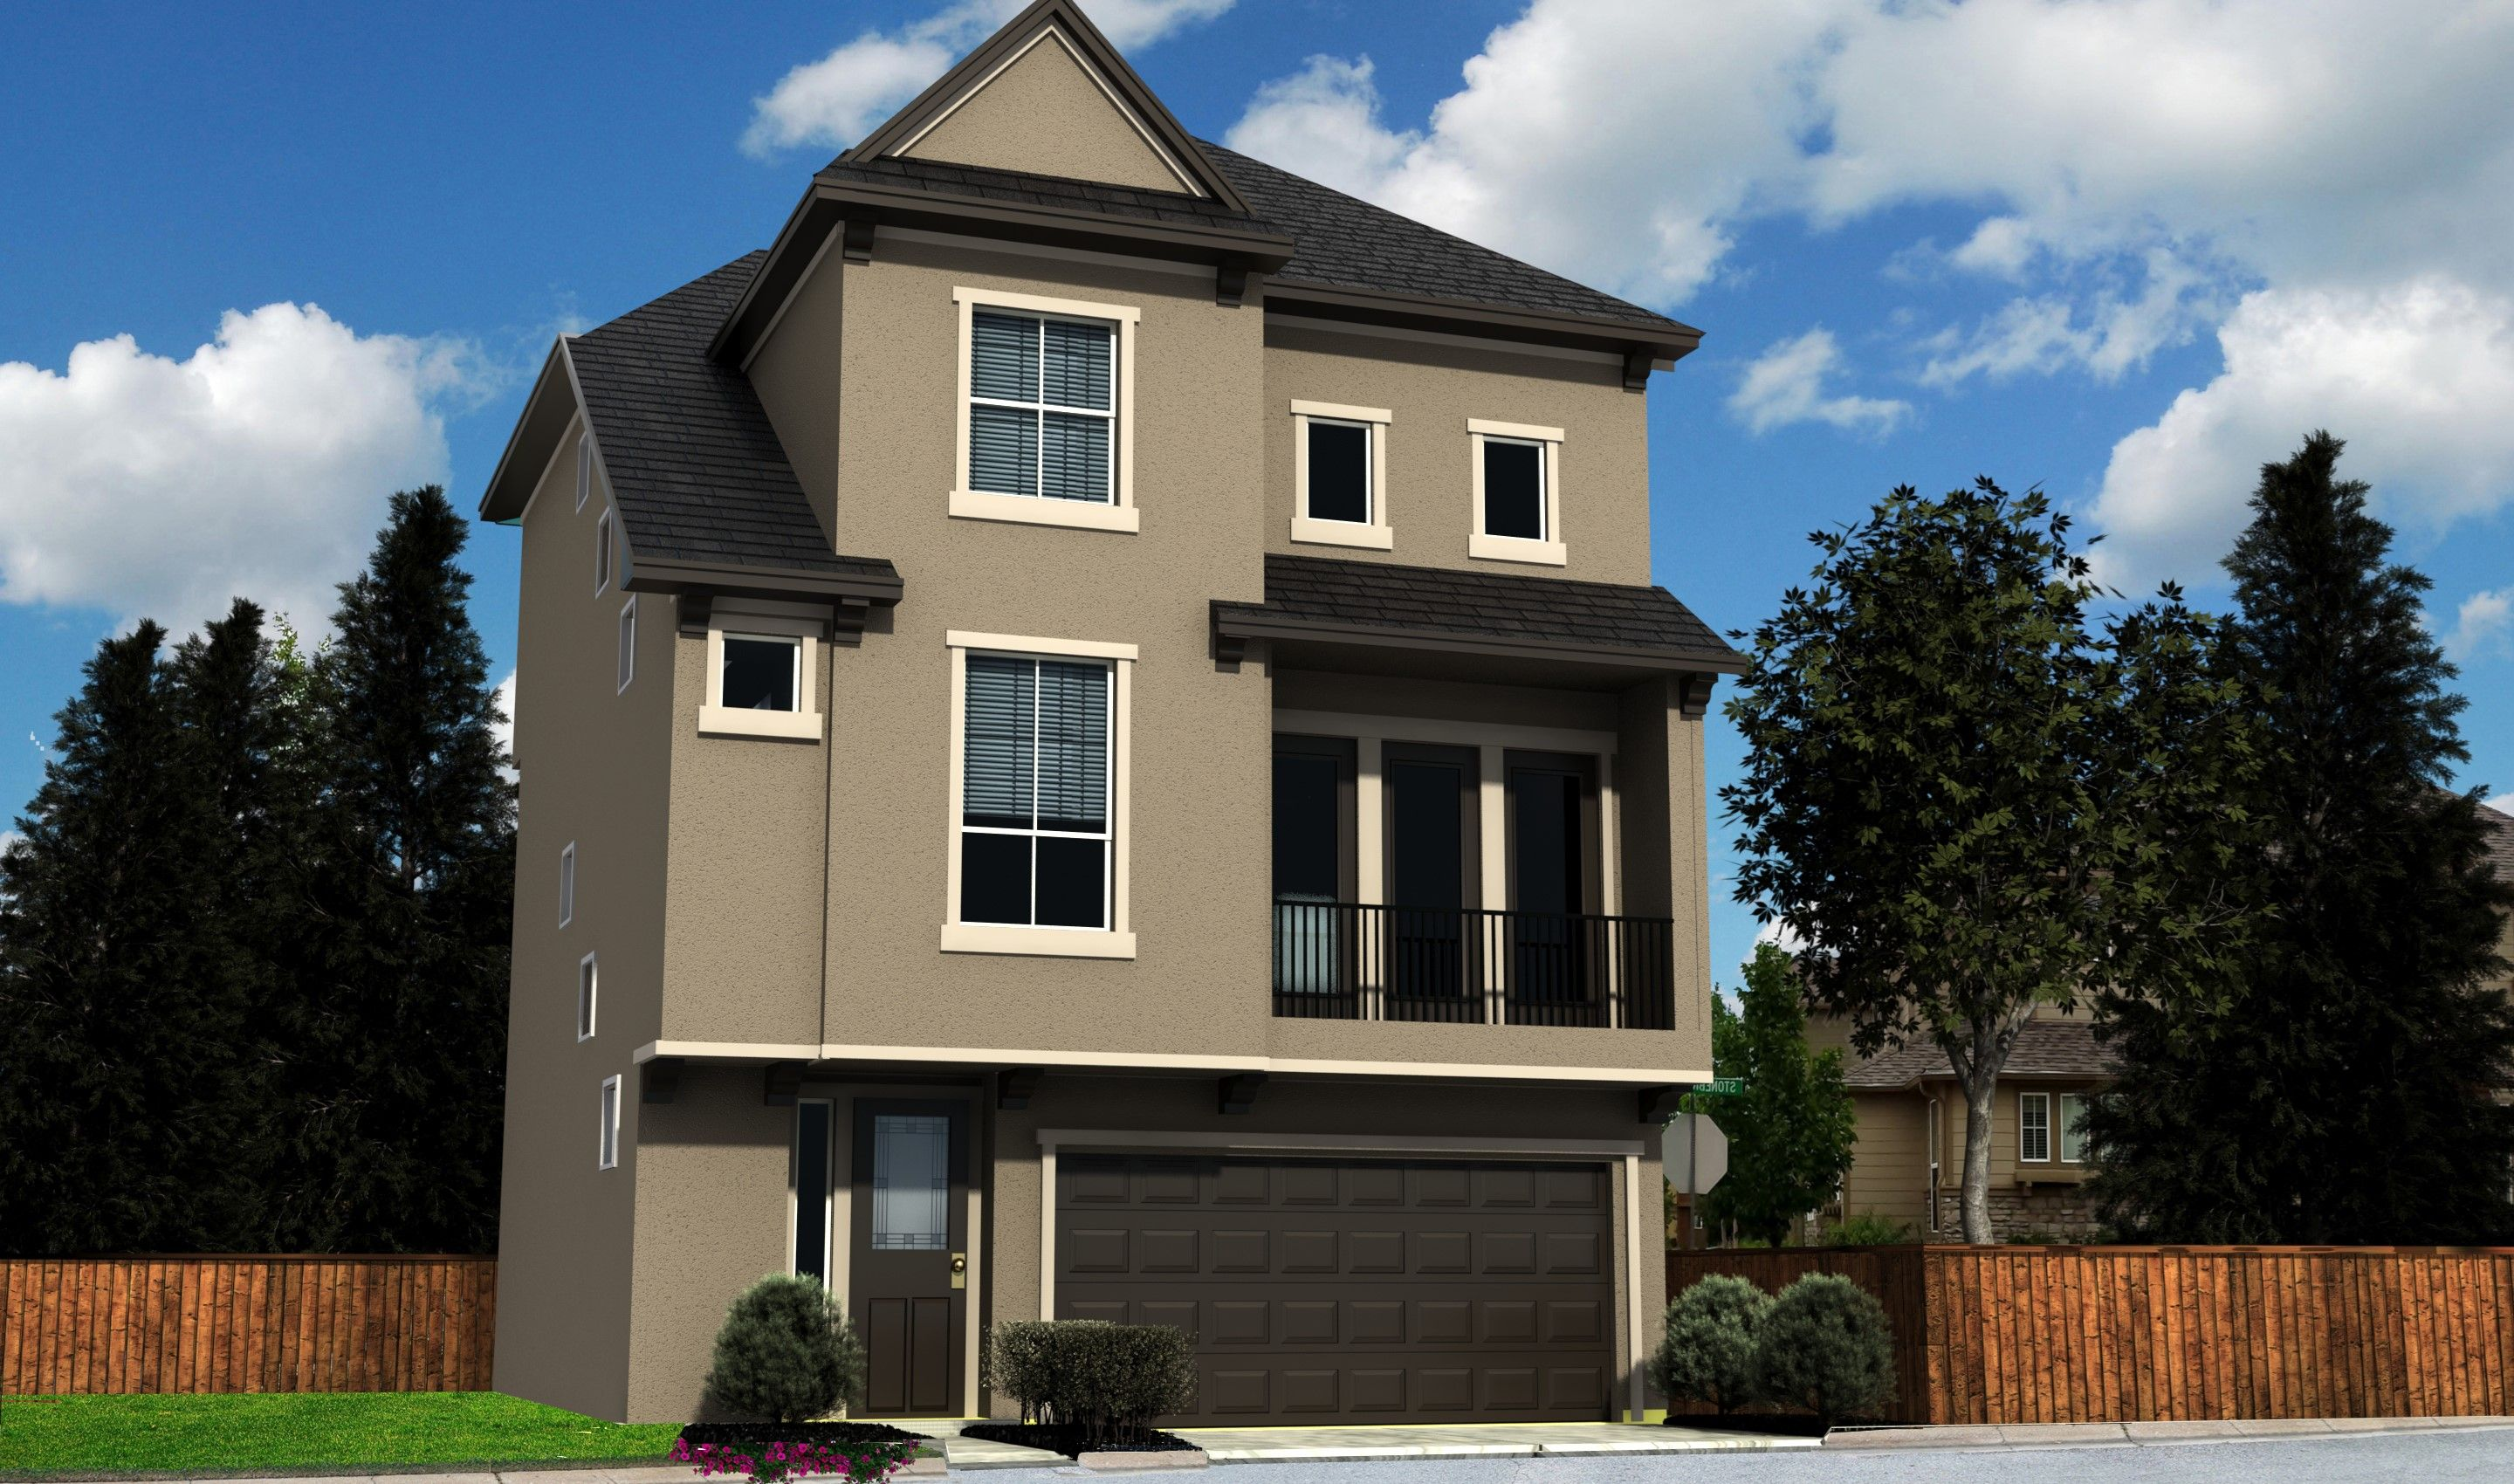 Single Family for Sale at Enclave At Oxford Park - Milan 12215 Oxford Crescent Circle Houston, Texas 77082 United States